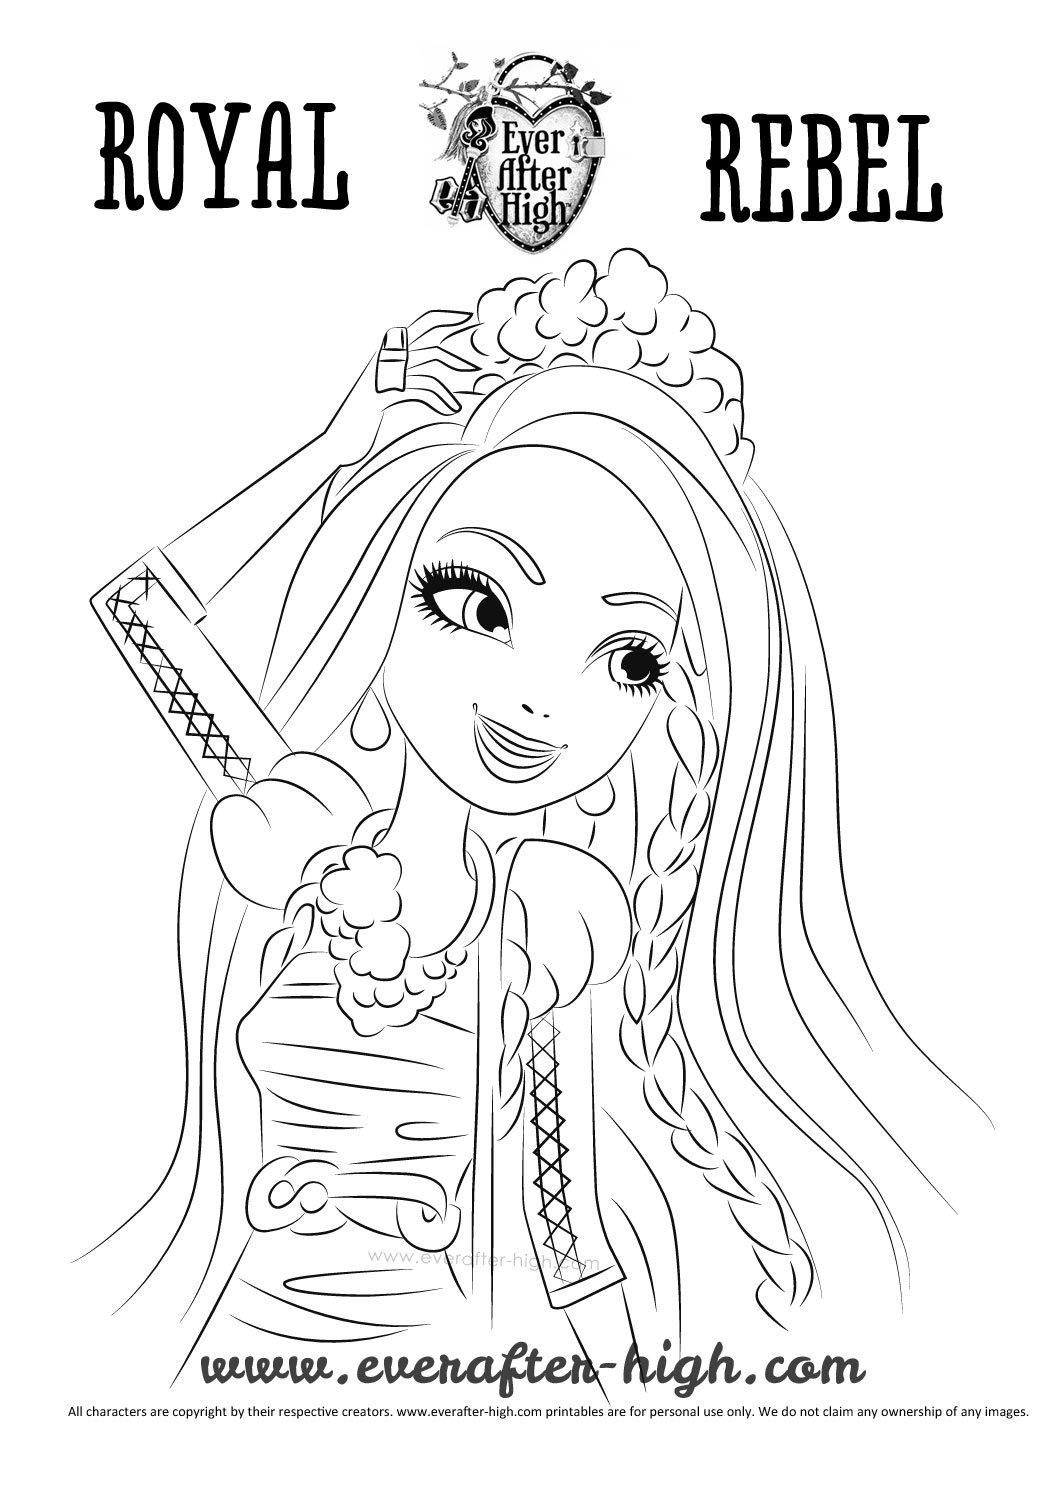 holly ohair coloring pages - photo#1